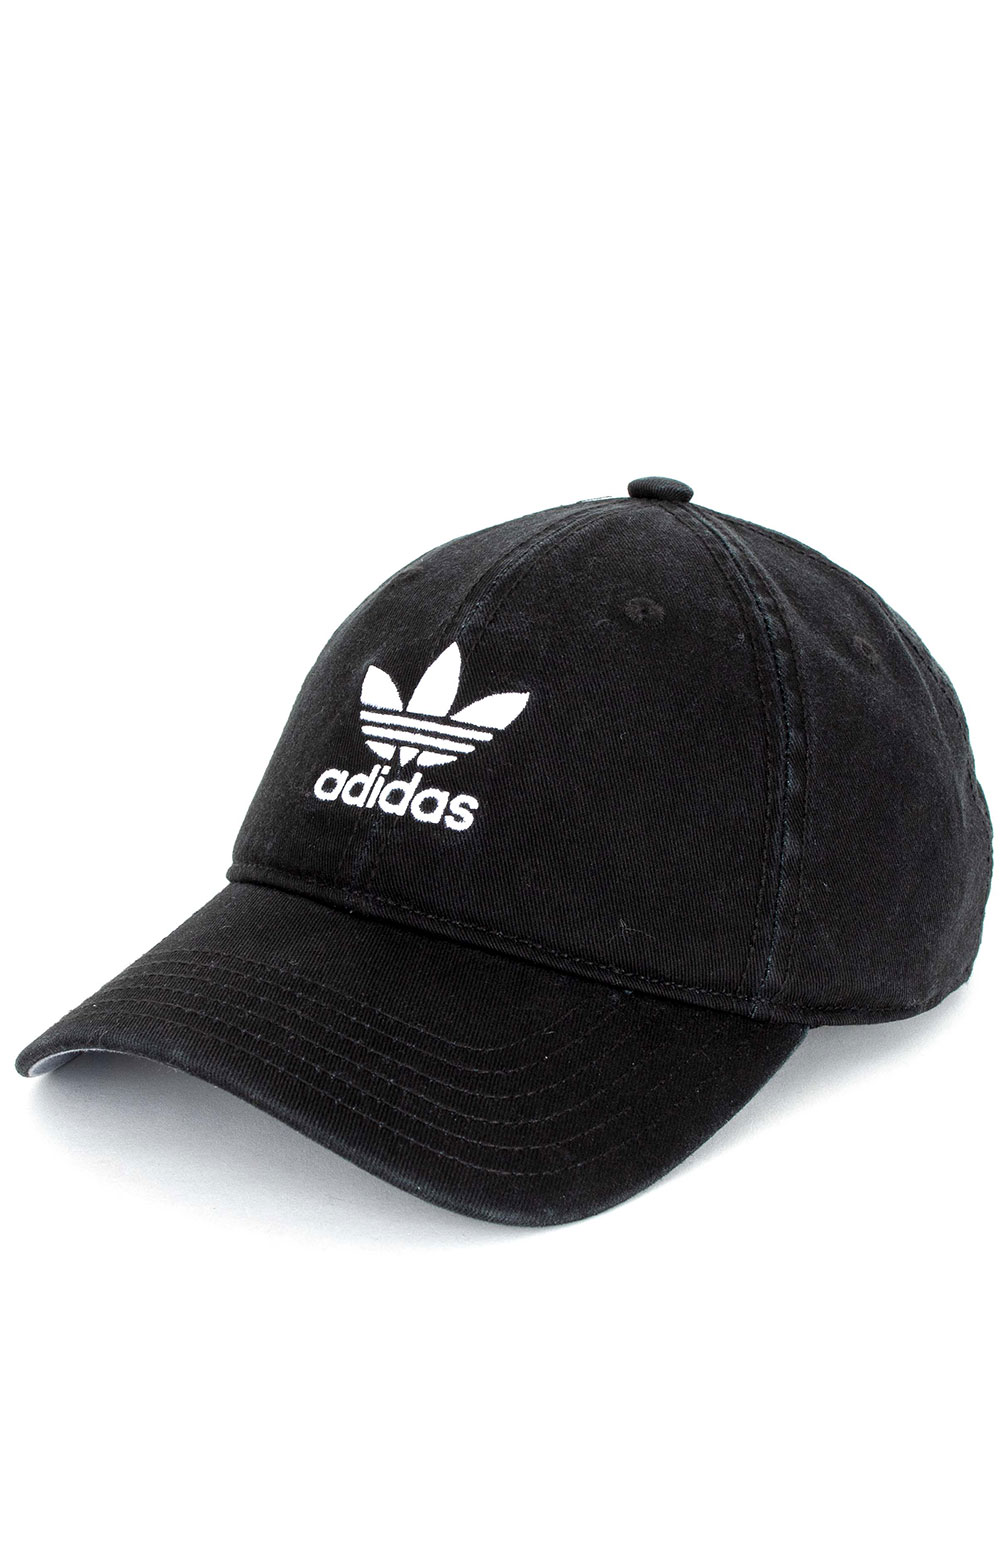 Adidas, Relaxed Strap-Back Hat - Black/White